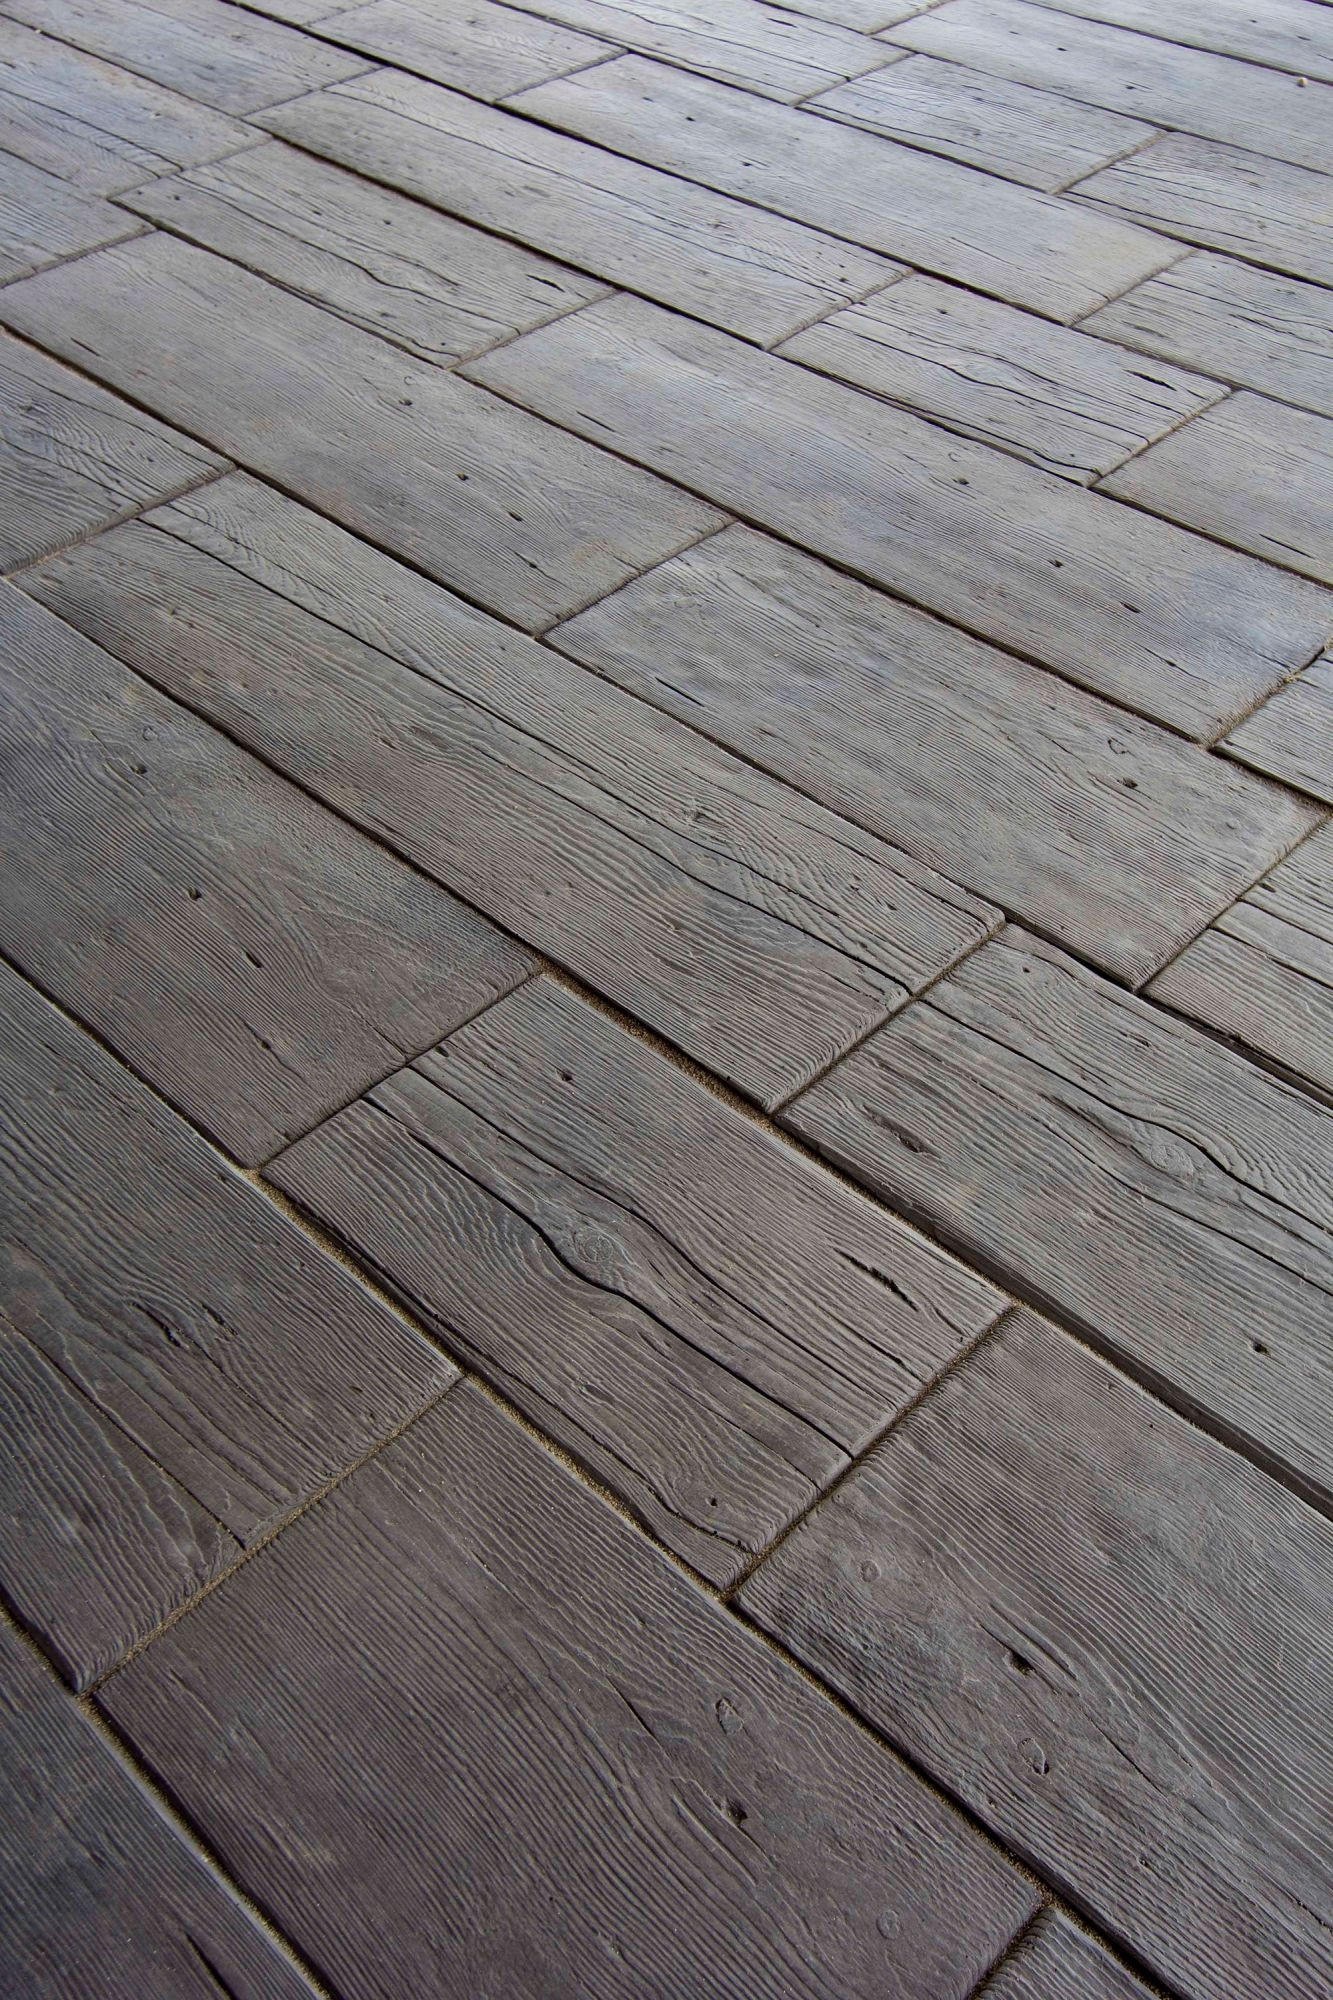 hardwood floor on concrete slab problems of rustic wood nope 2 thick concrete pavers barn plank landscape intended for rustic wood nope 2 thick concrete pavers barn plank landscape tile by silver creek stoneworks rochester mn ideal for outdoor paths decks etc